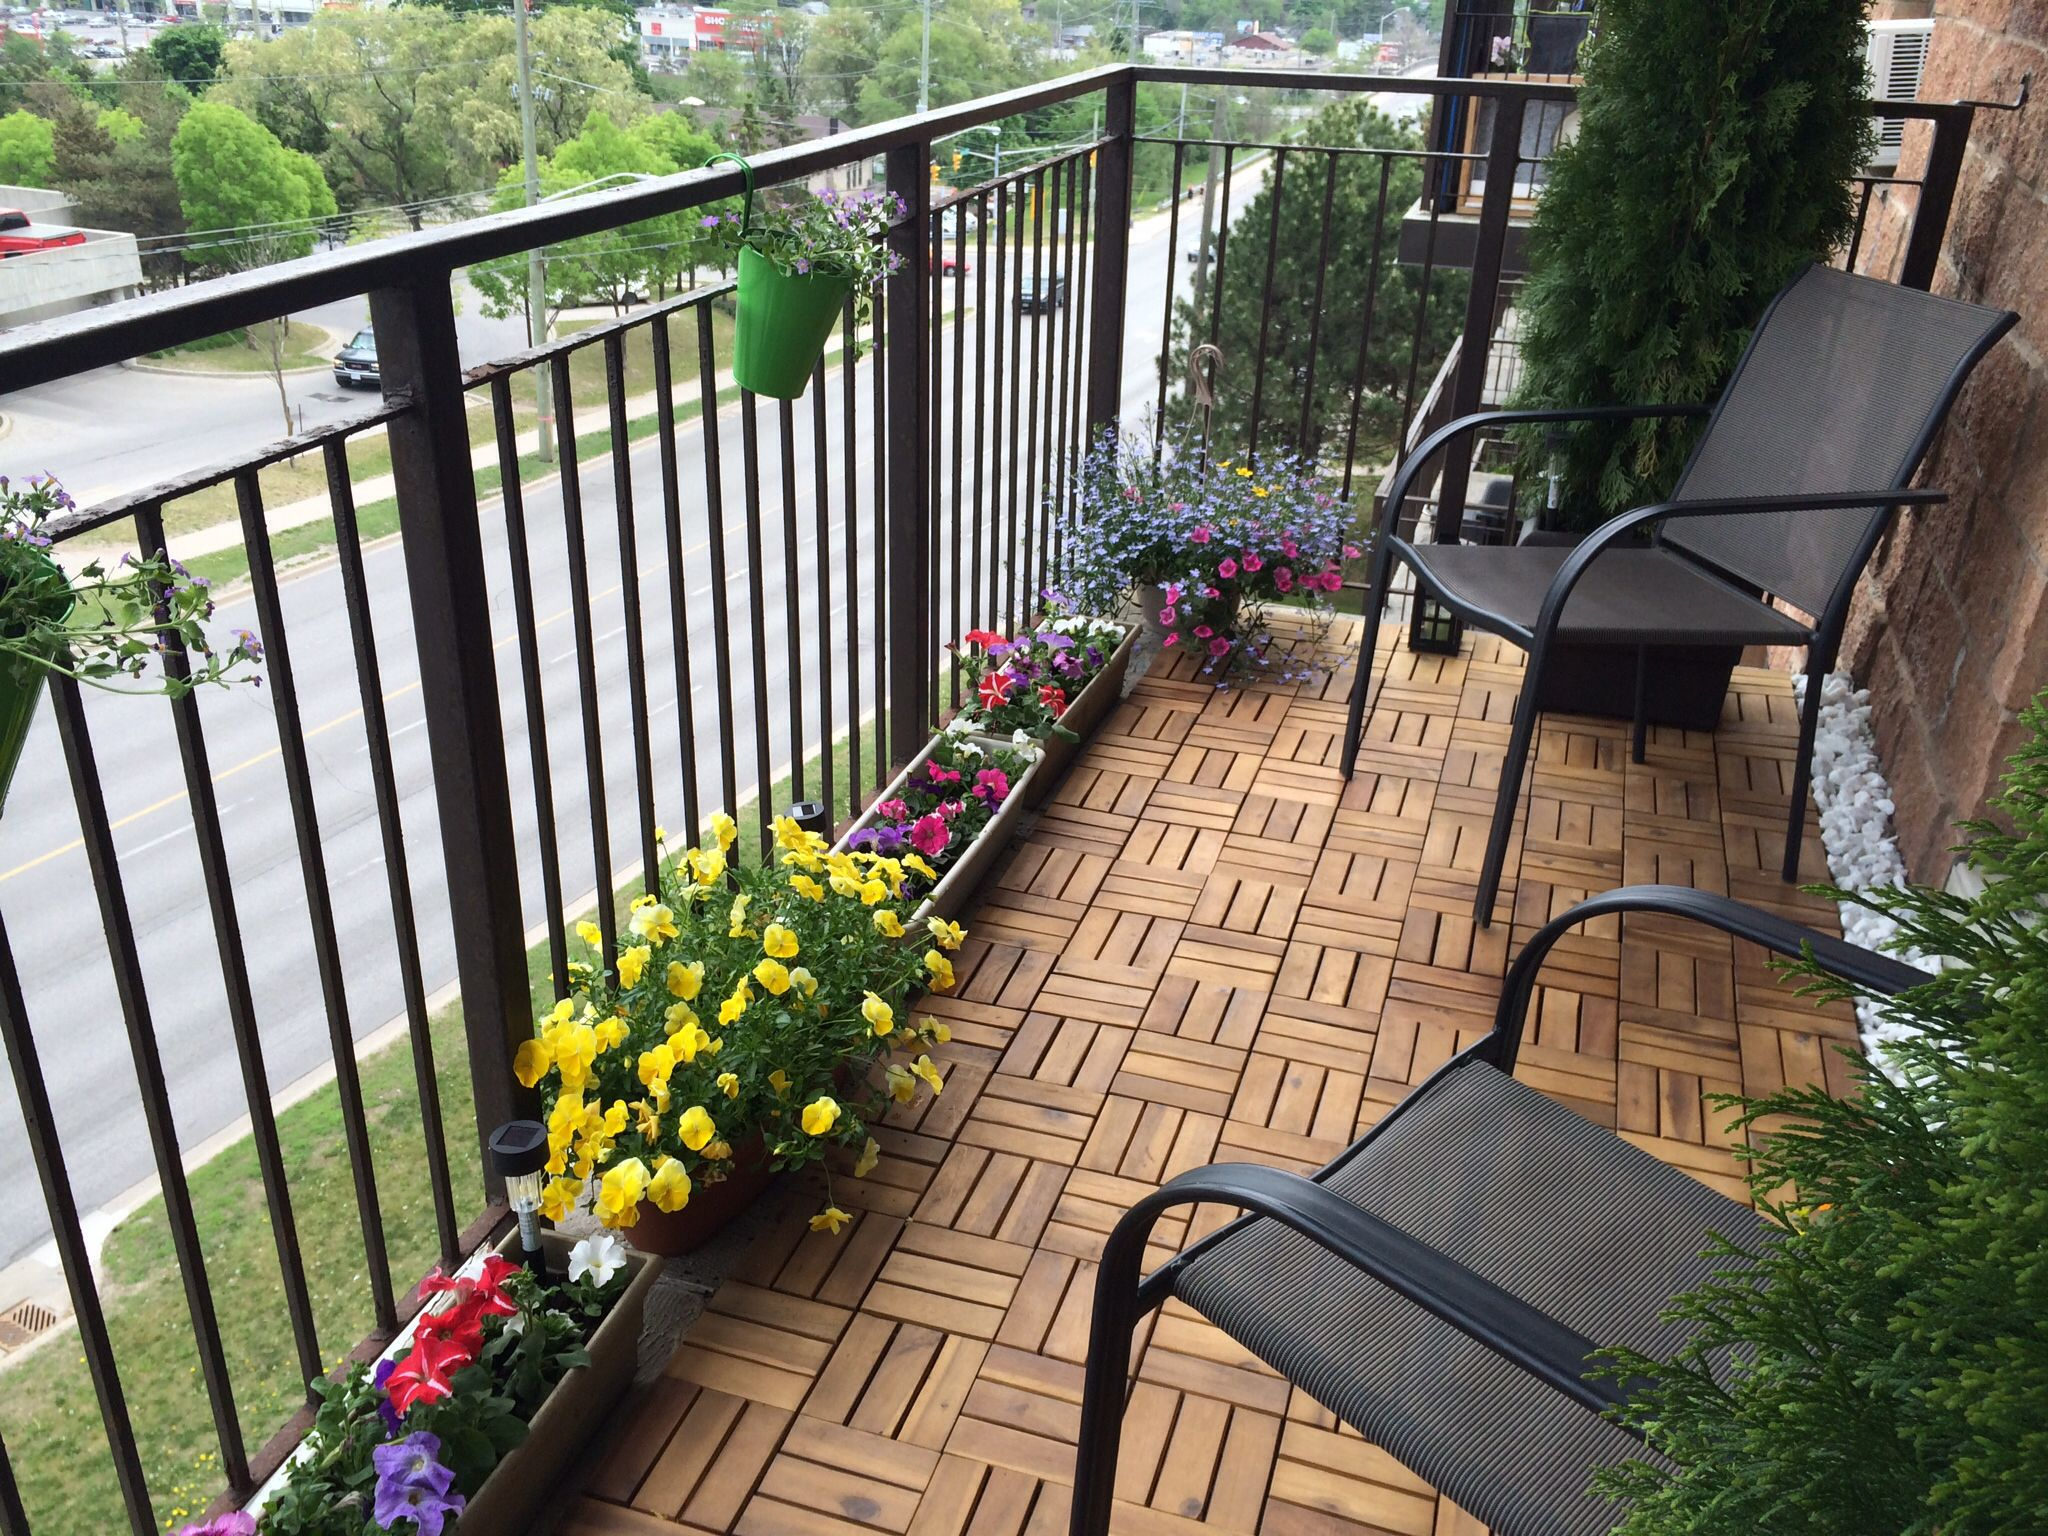 Turn a boring concrete apartment balcony into your own